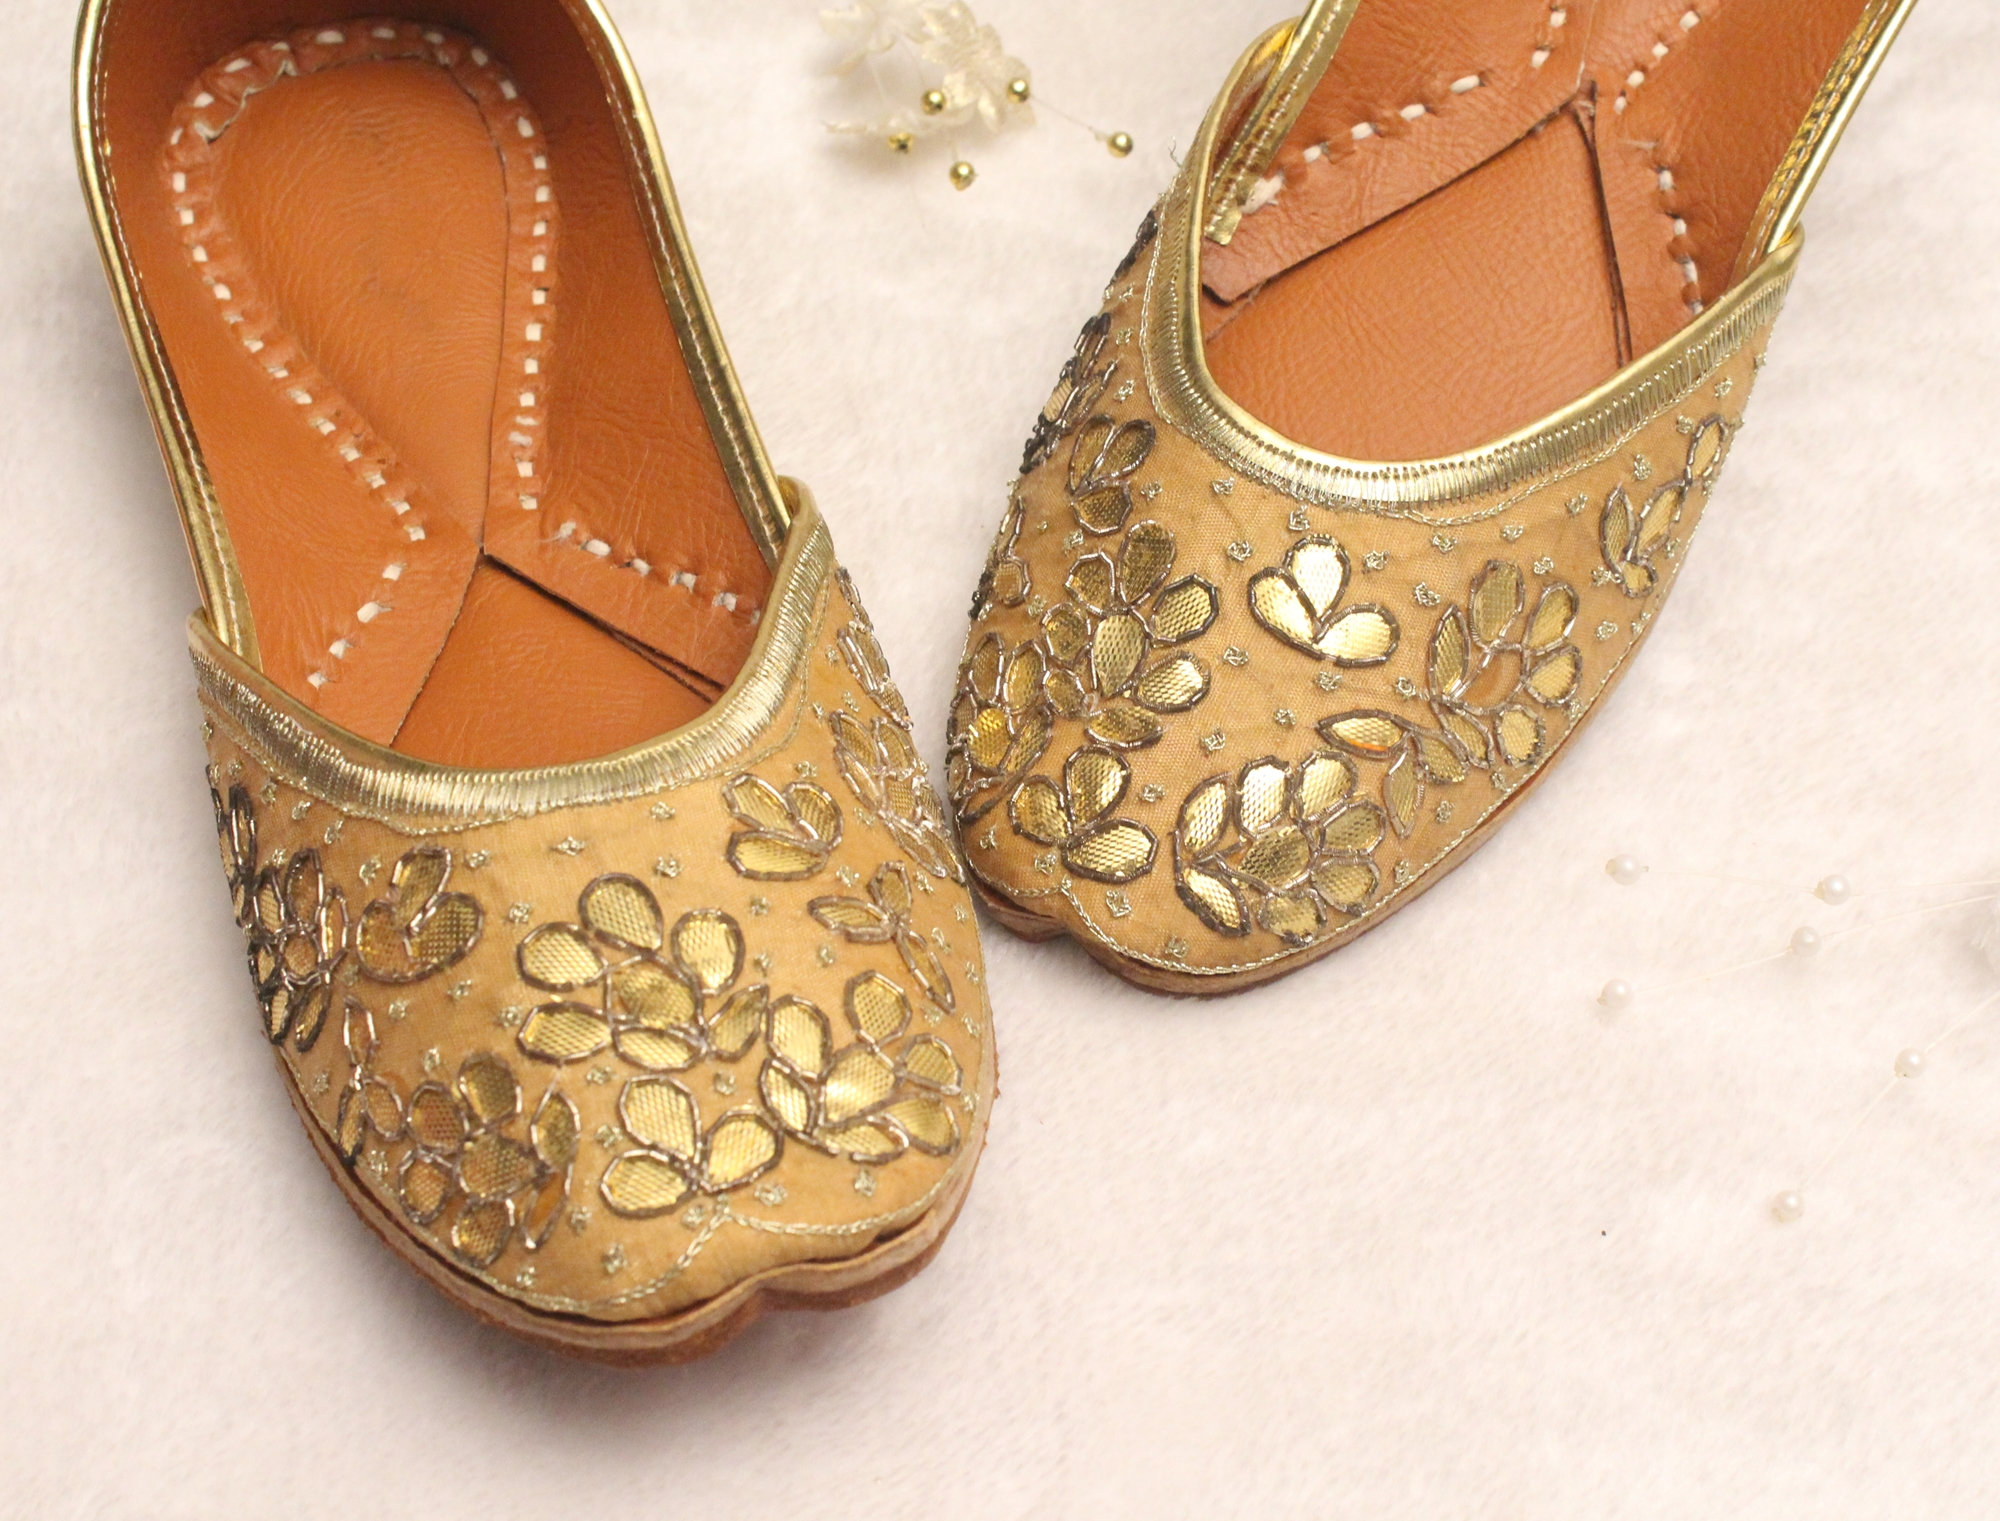 54d6a38dea8 Women Bridal Wedding Shoes Indian Gold Jutti Shoes Gold